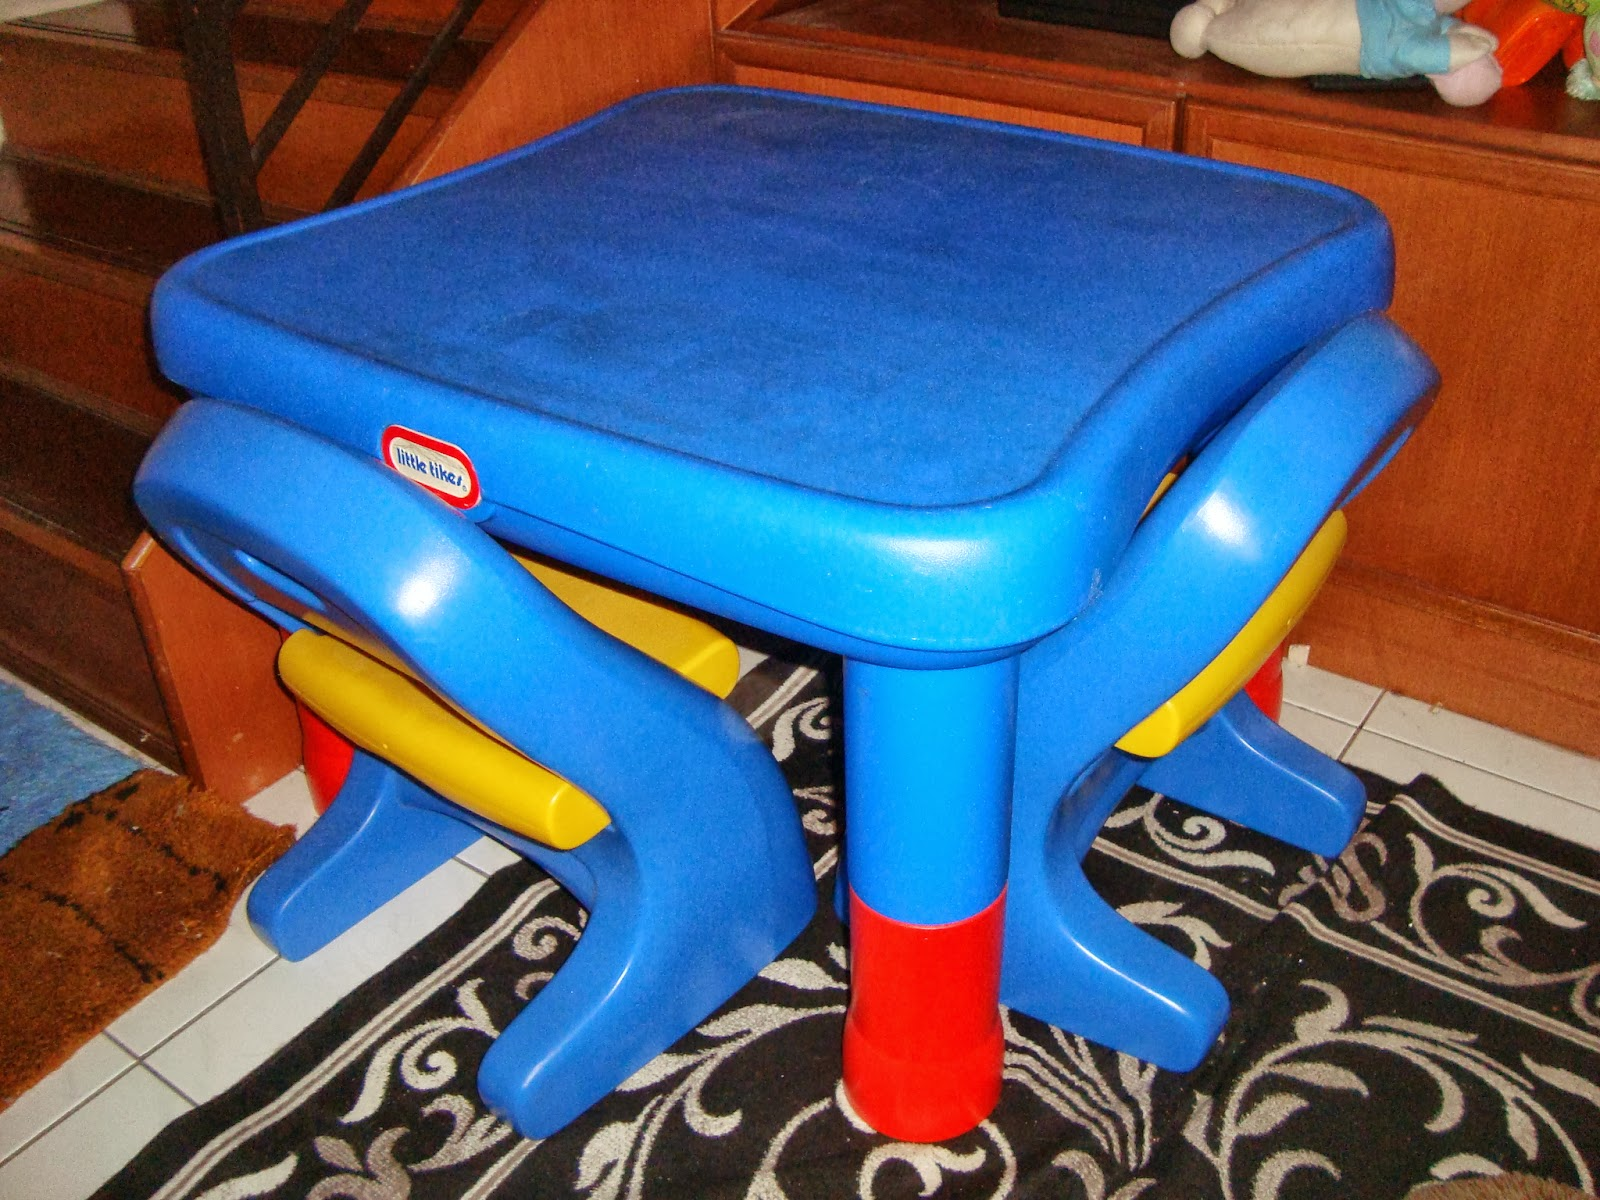 Because kids grow so fast this Little Tikes Adjustable Table u0026 Chair Set can be adjusted to different heights. Table easily adjusts to 4 heights 20  21  ... & Preloved ToysWorld TheTotToys: Little Tikes 7749 Adjustable Table ...